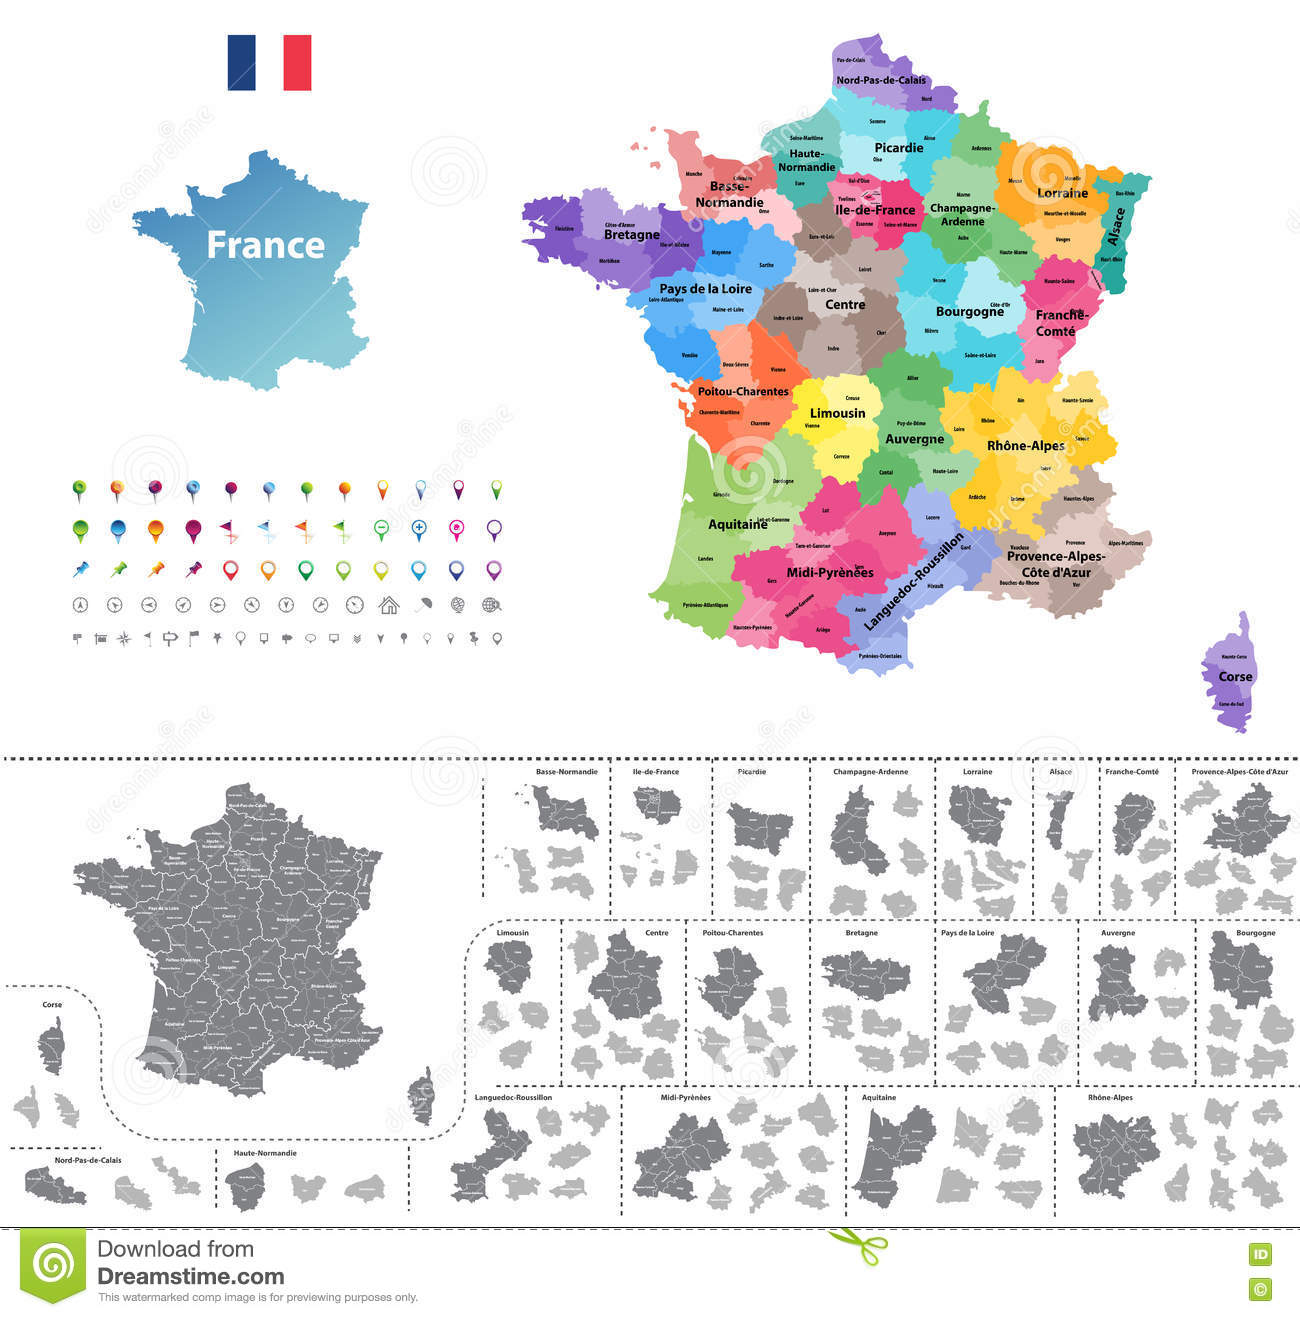 Regions In France Map.France Map Colored By Regions Stock Vector Illustration Of Conte